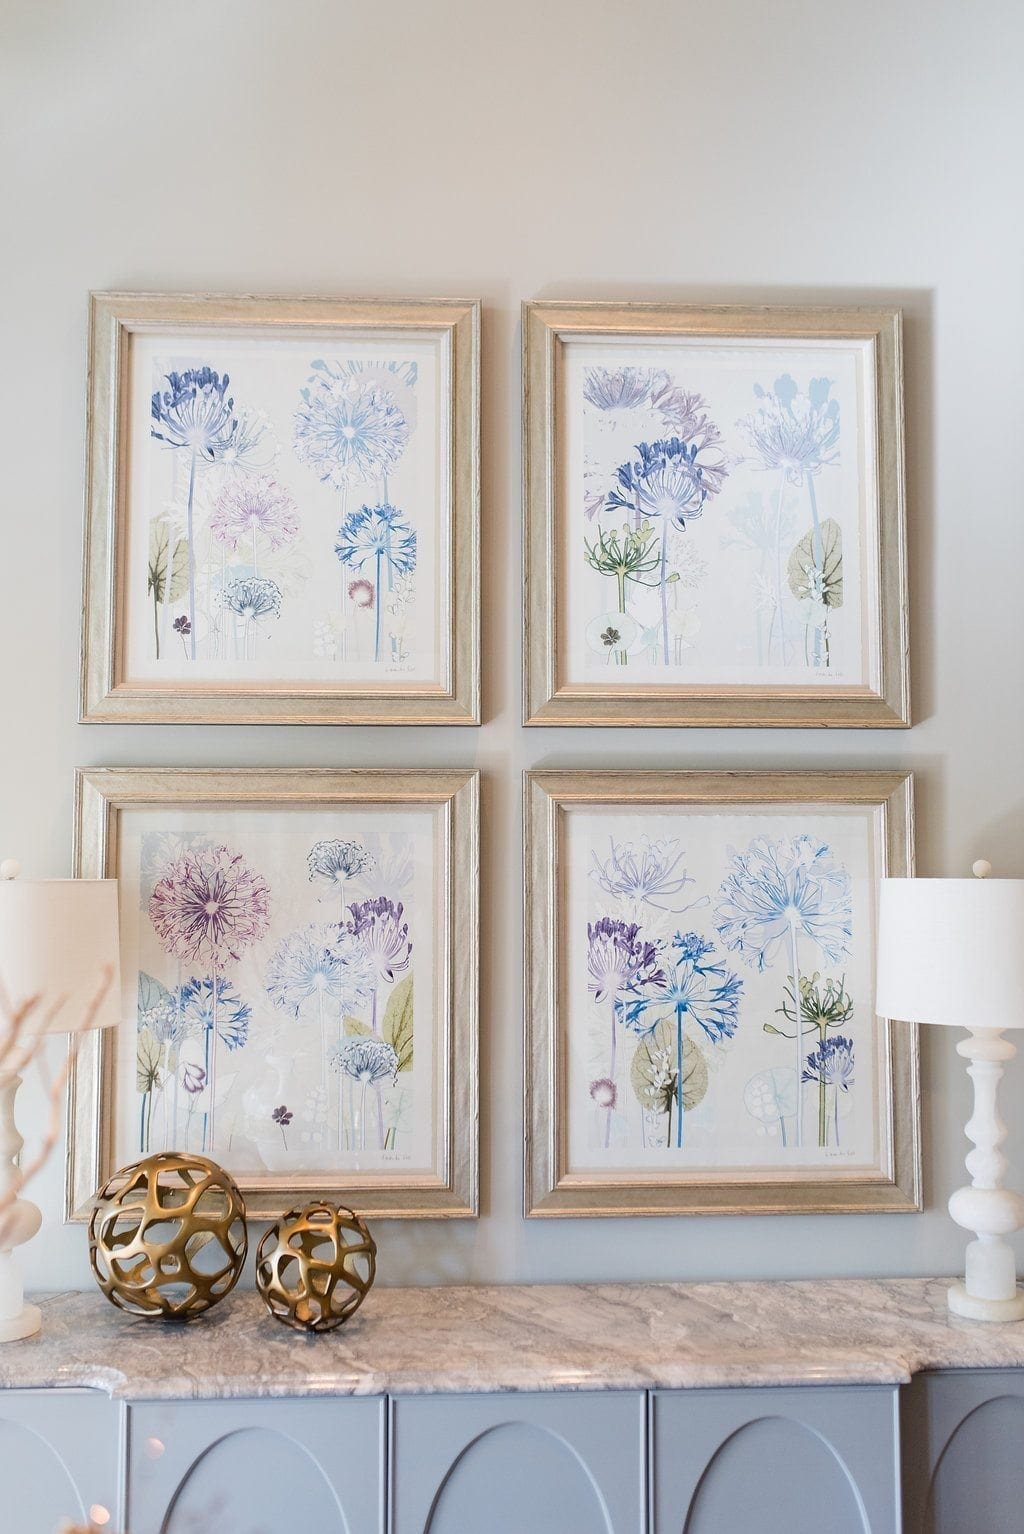 Botanical artwork in shades of purple, pink, blue and green. Pretty floral artwork series.